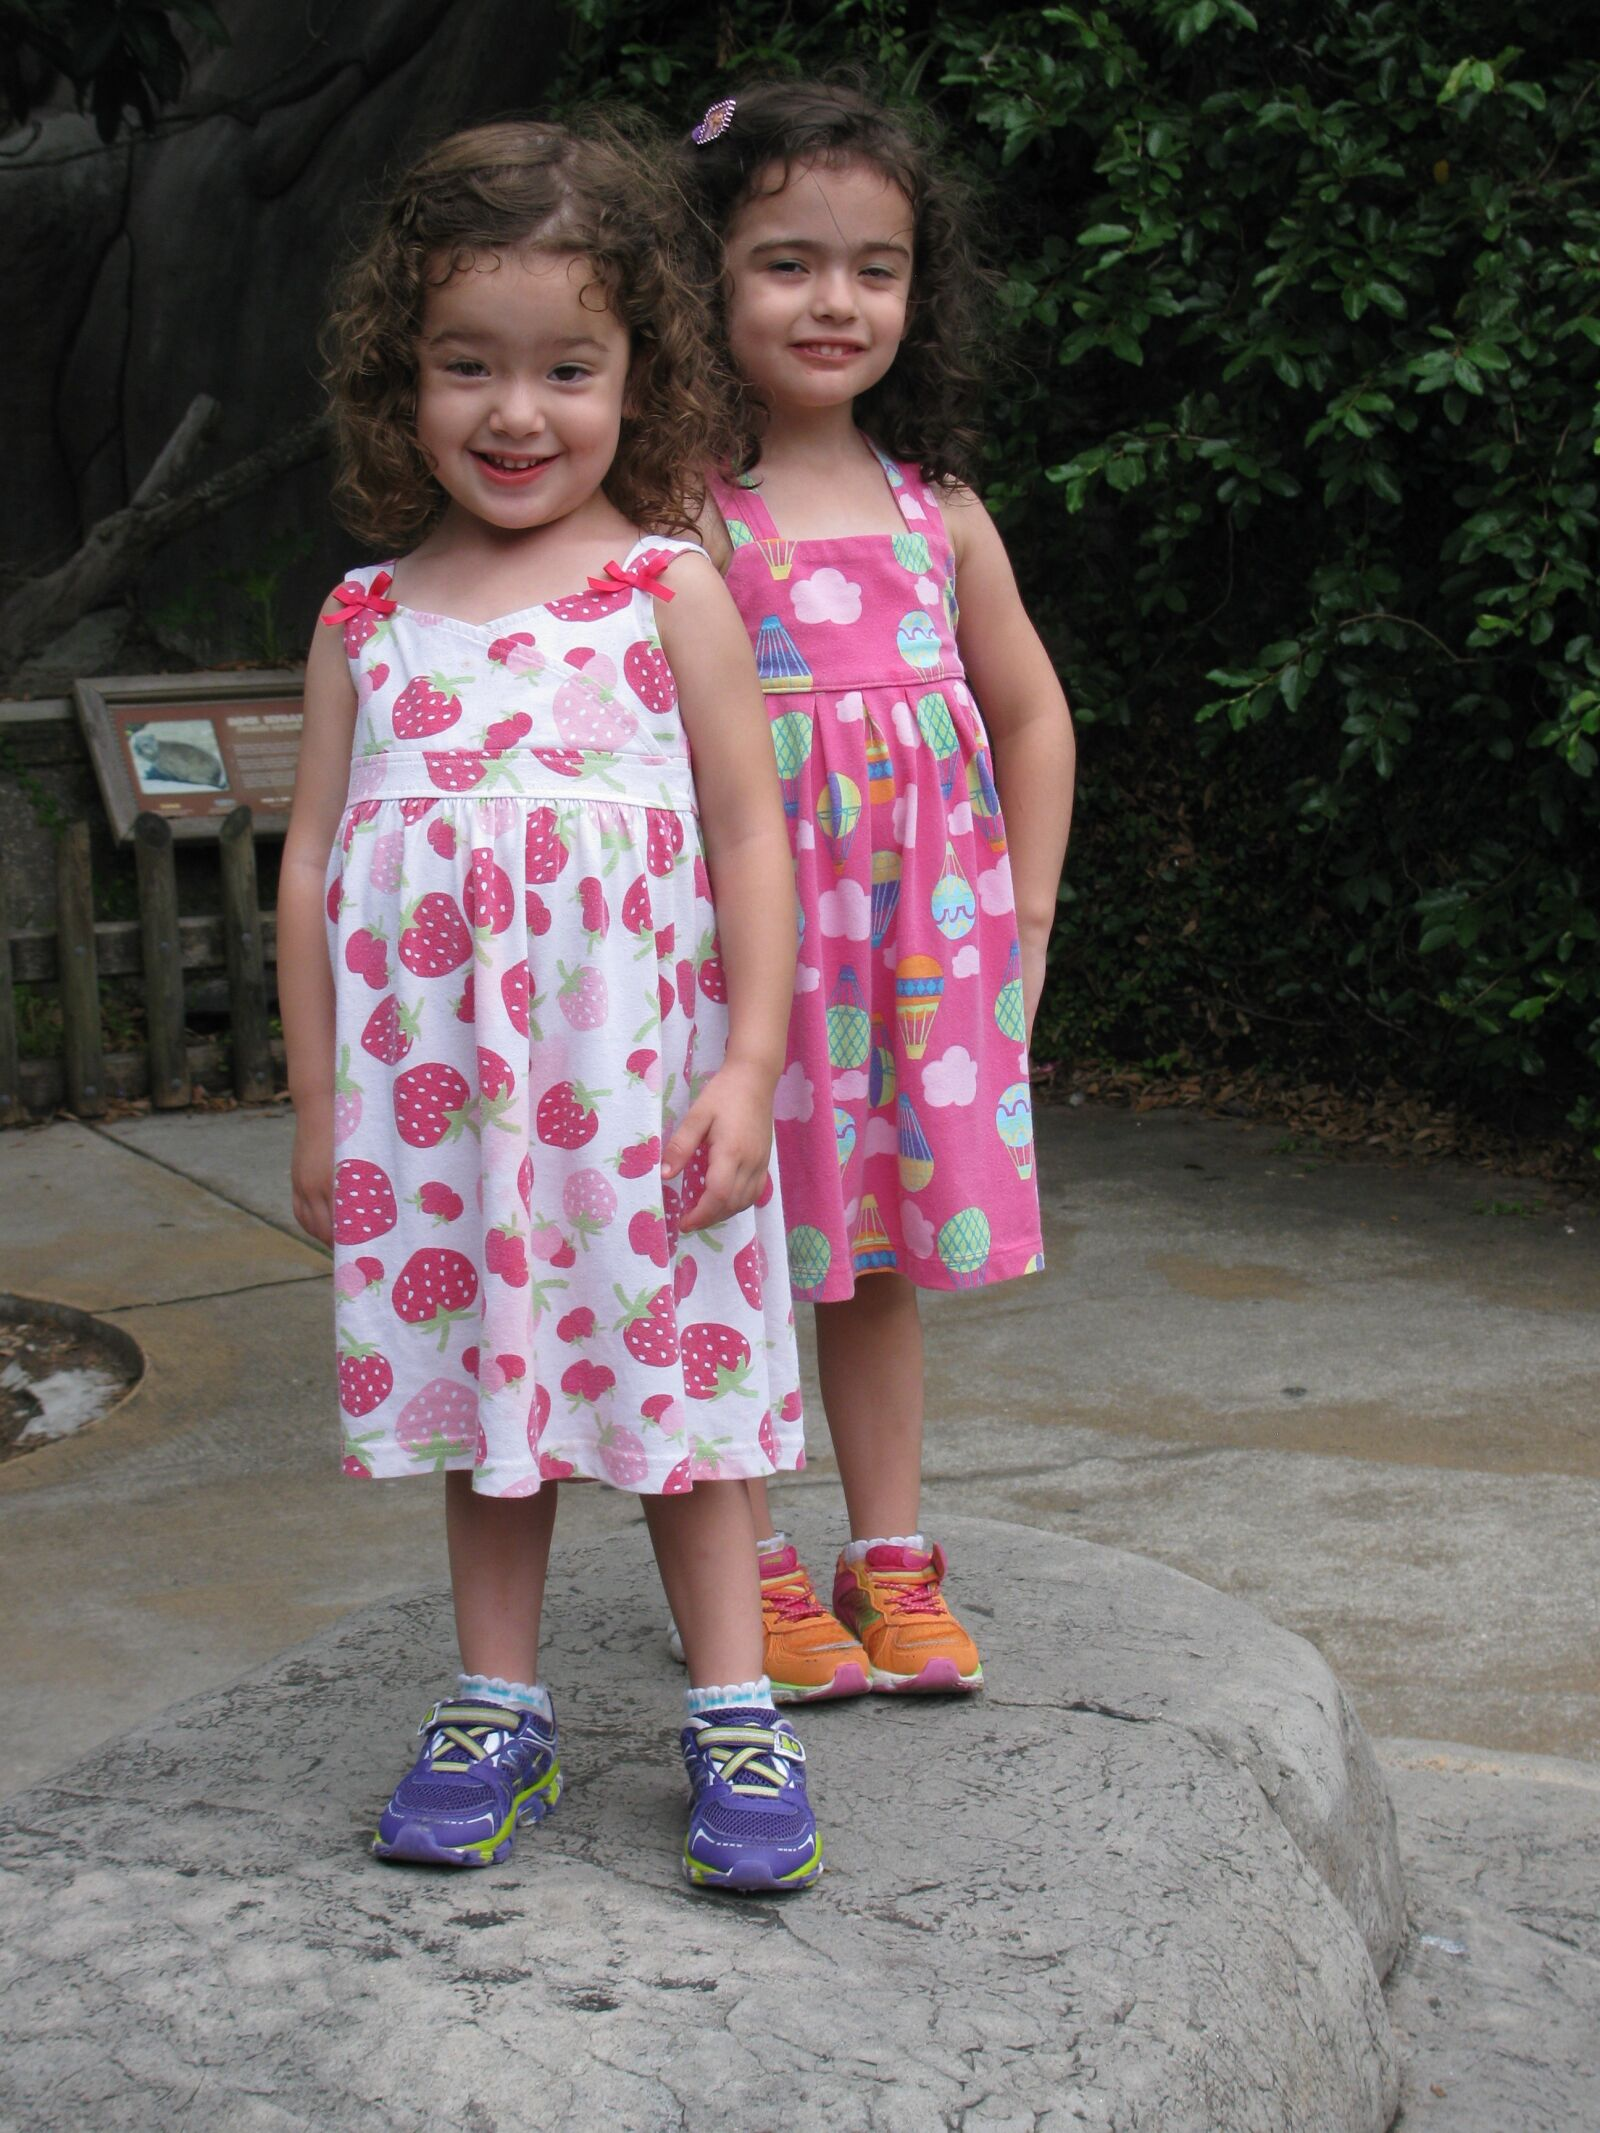 """Canon PowerShot SX110 IS sample photo. """"Twins, girls, sisters"""" photography"""